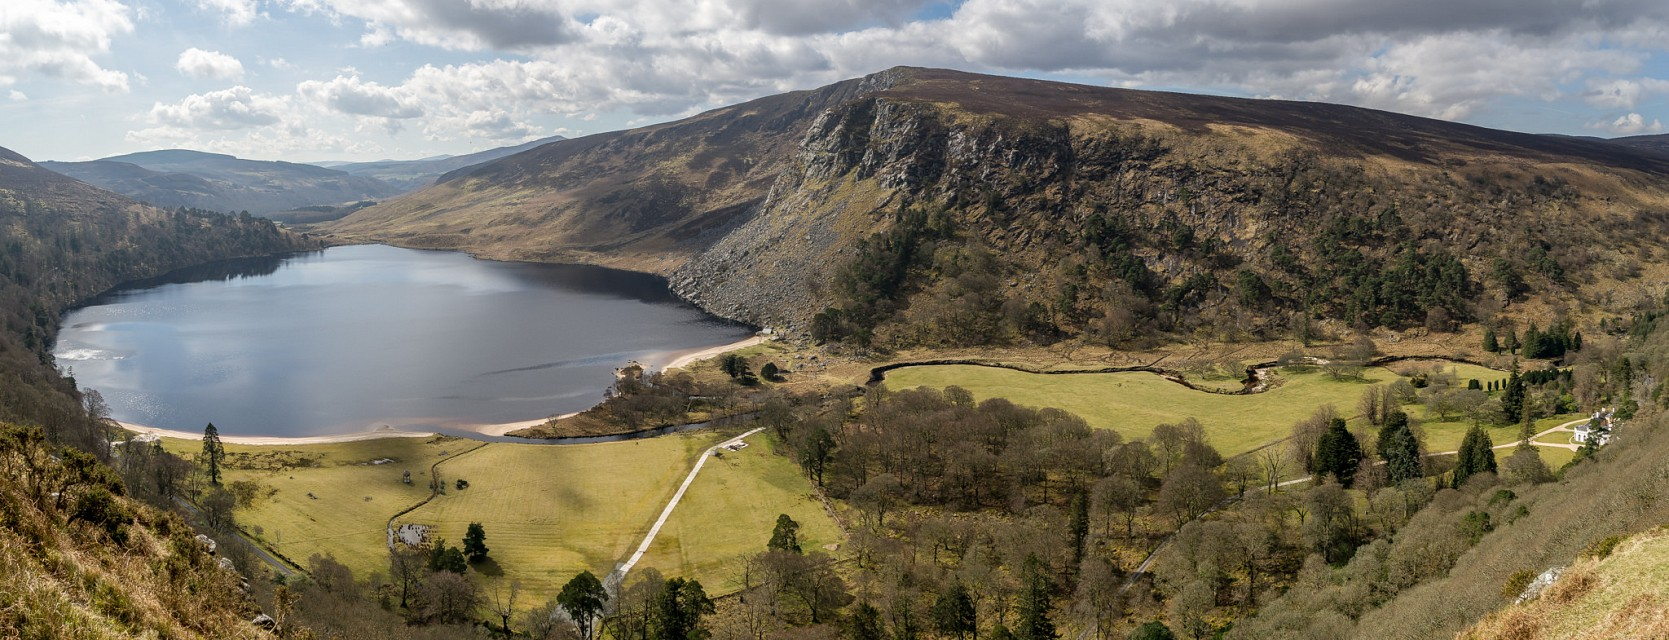 Lough Tay, Wicklow, Ireland - Ireland